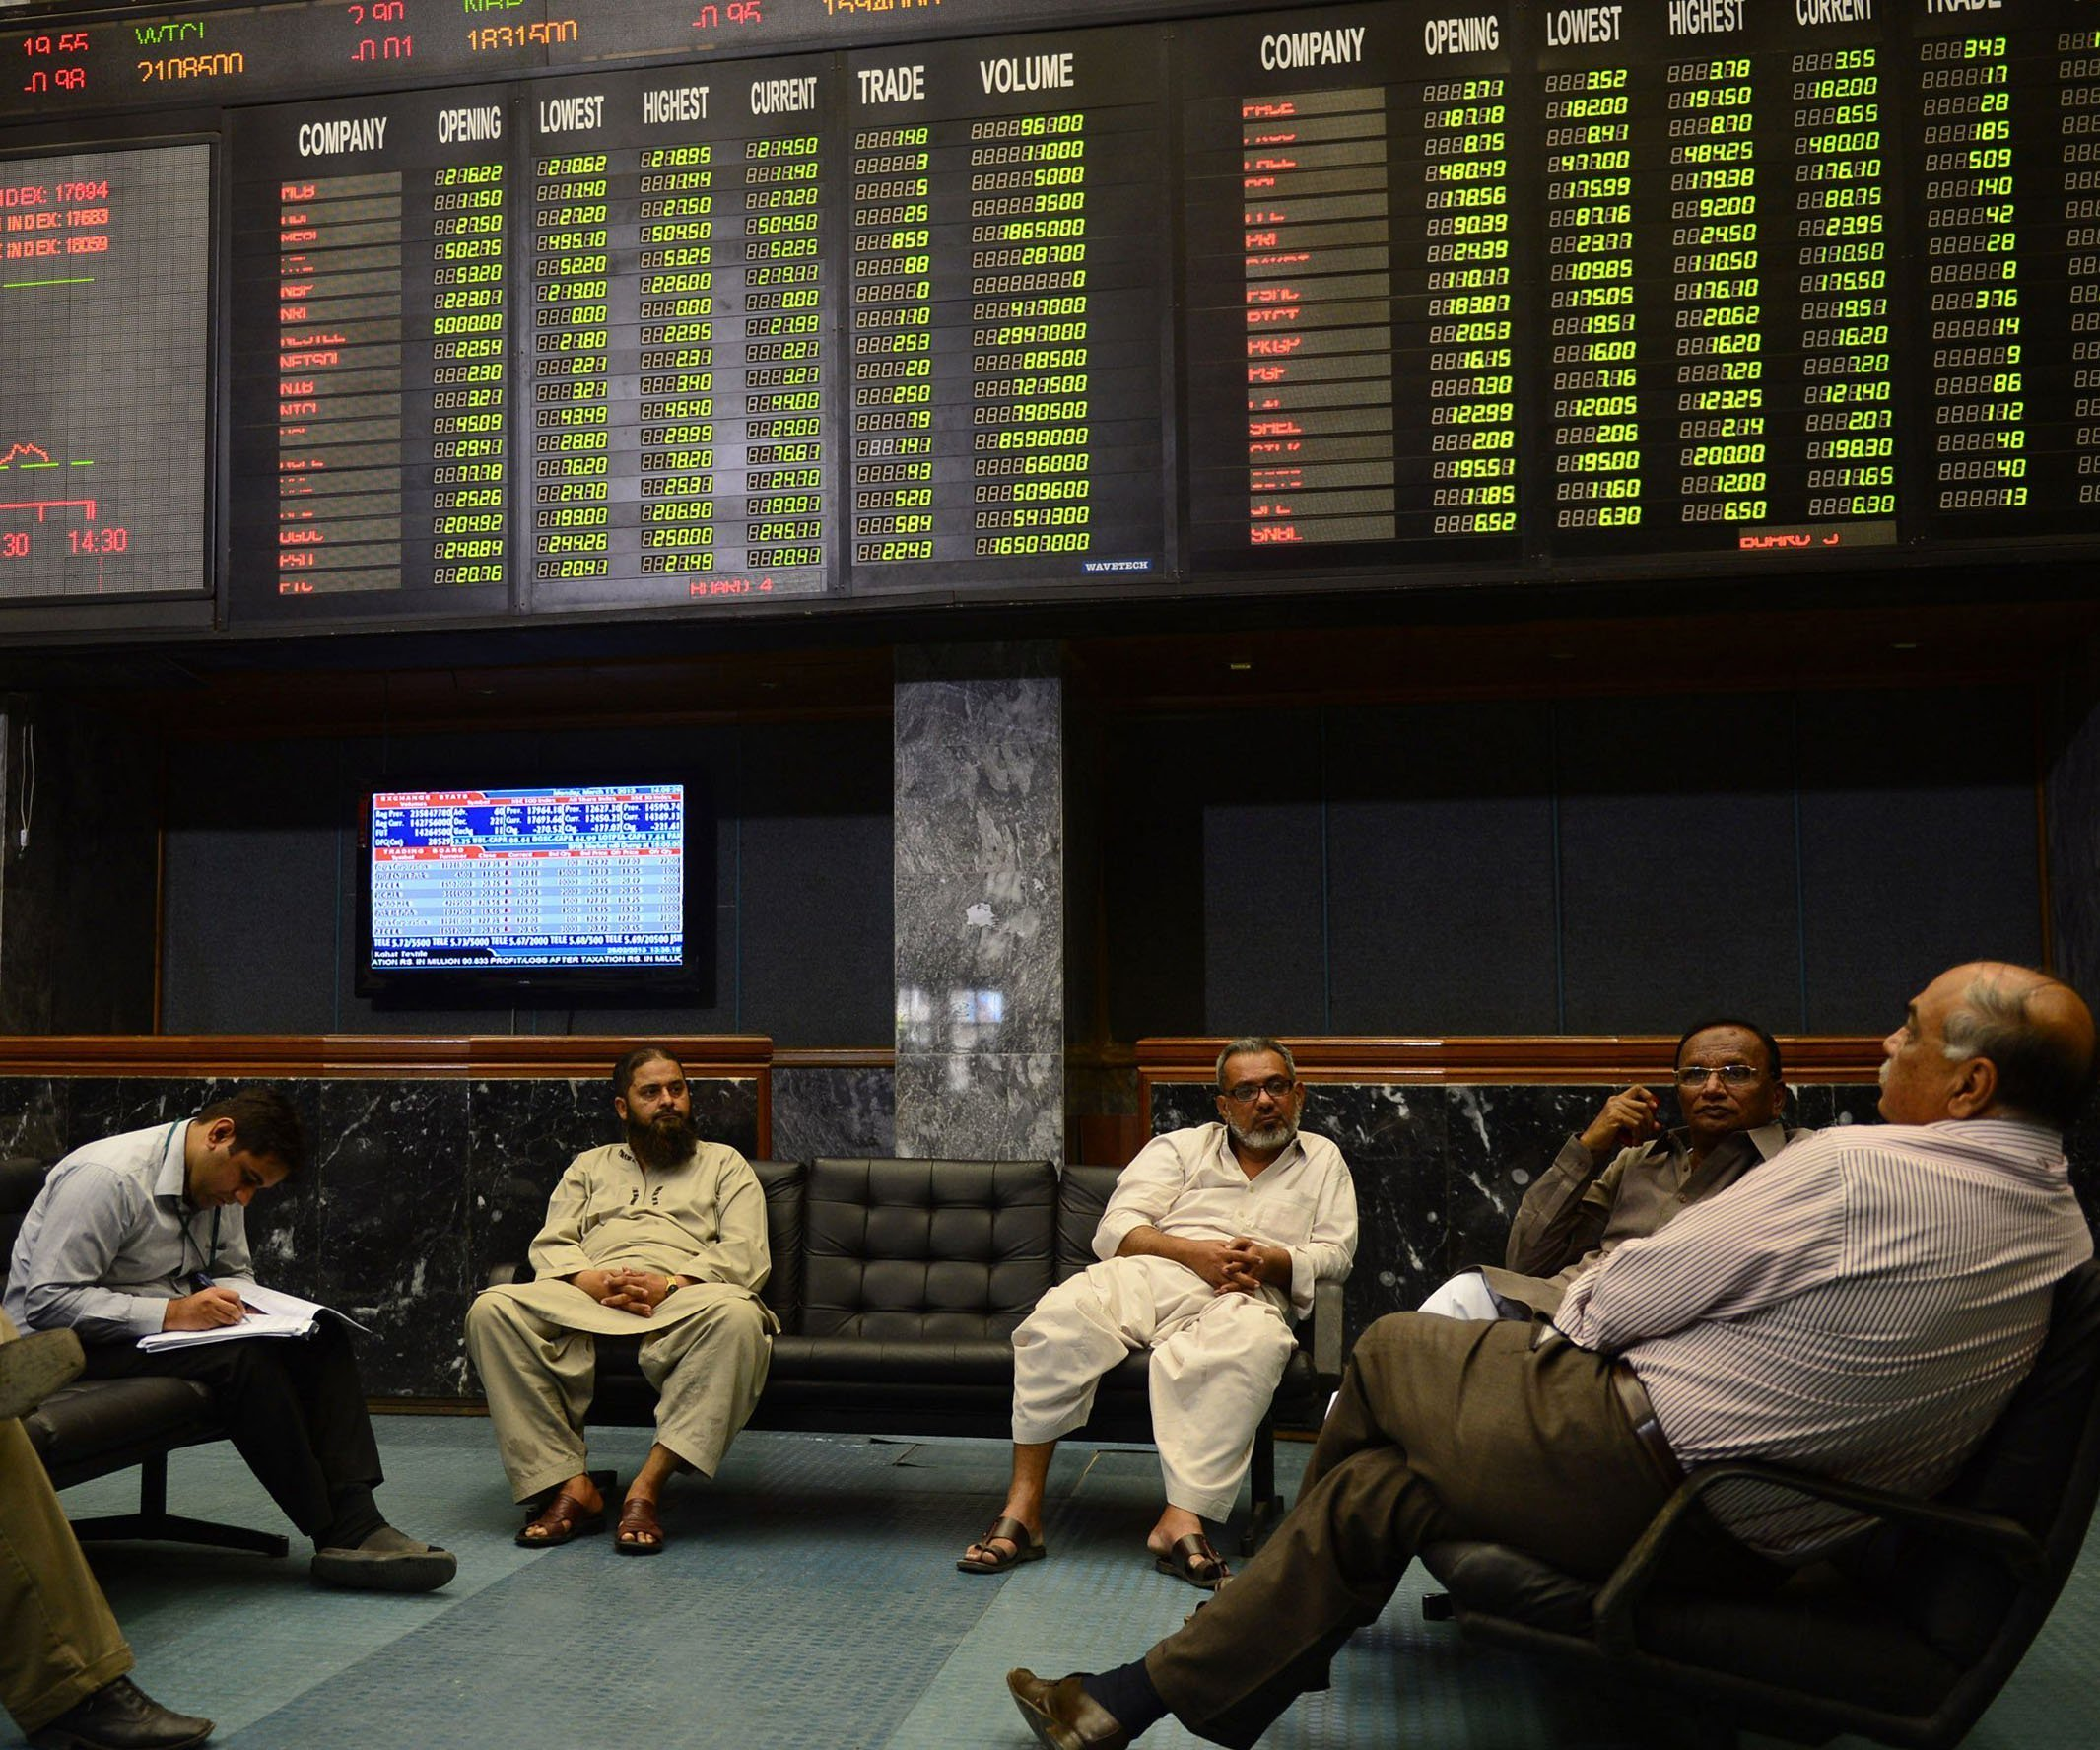 Benchmark index increases 827.67 points to settle at 38,411.56. PHOTO: AFP